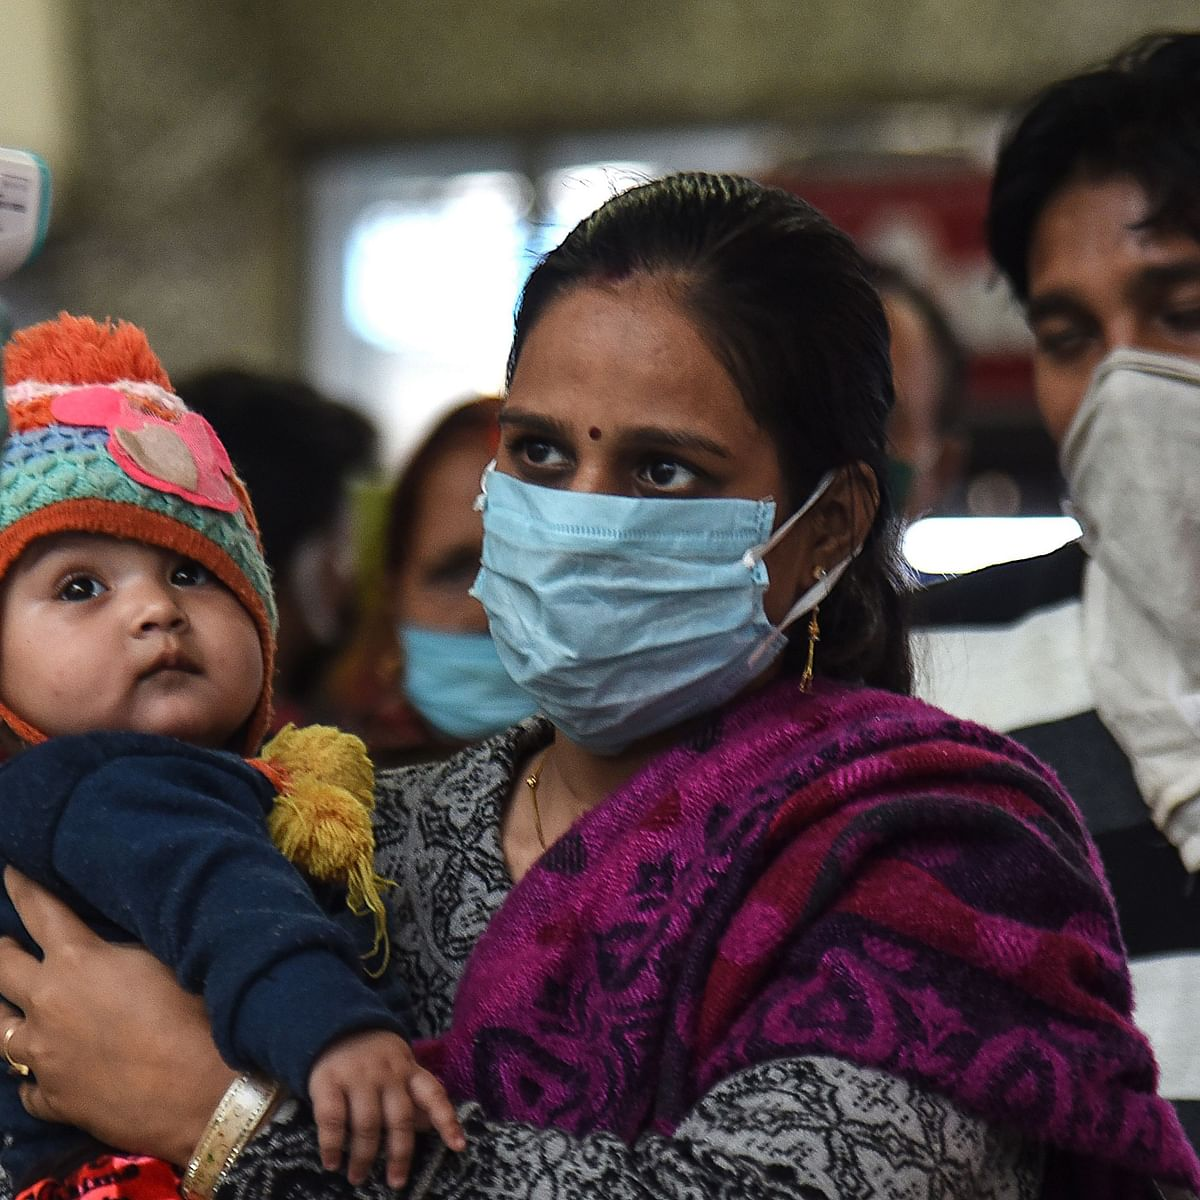 COVID-19 in Thane: With 318 new coronavirus cases, tally rises to 2,51,959